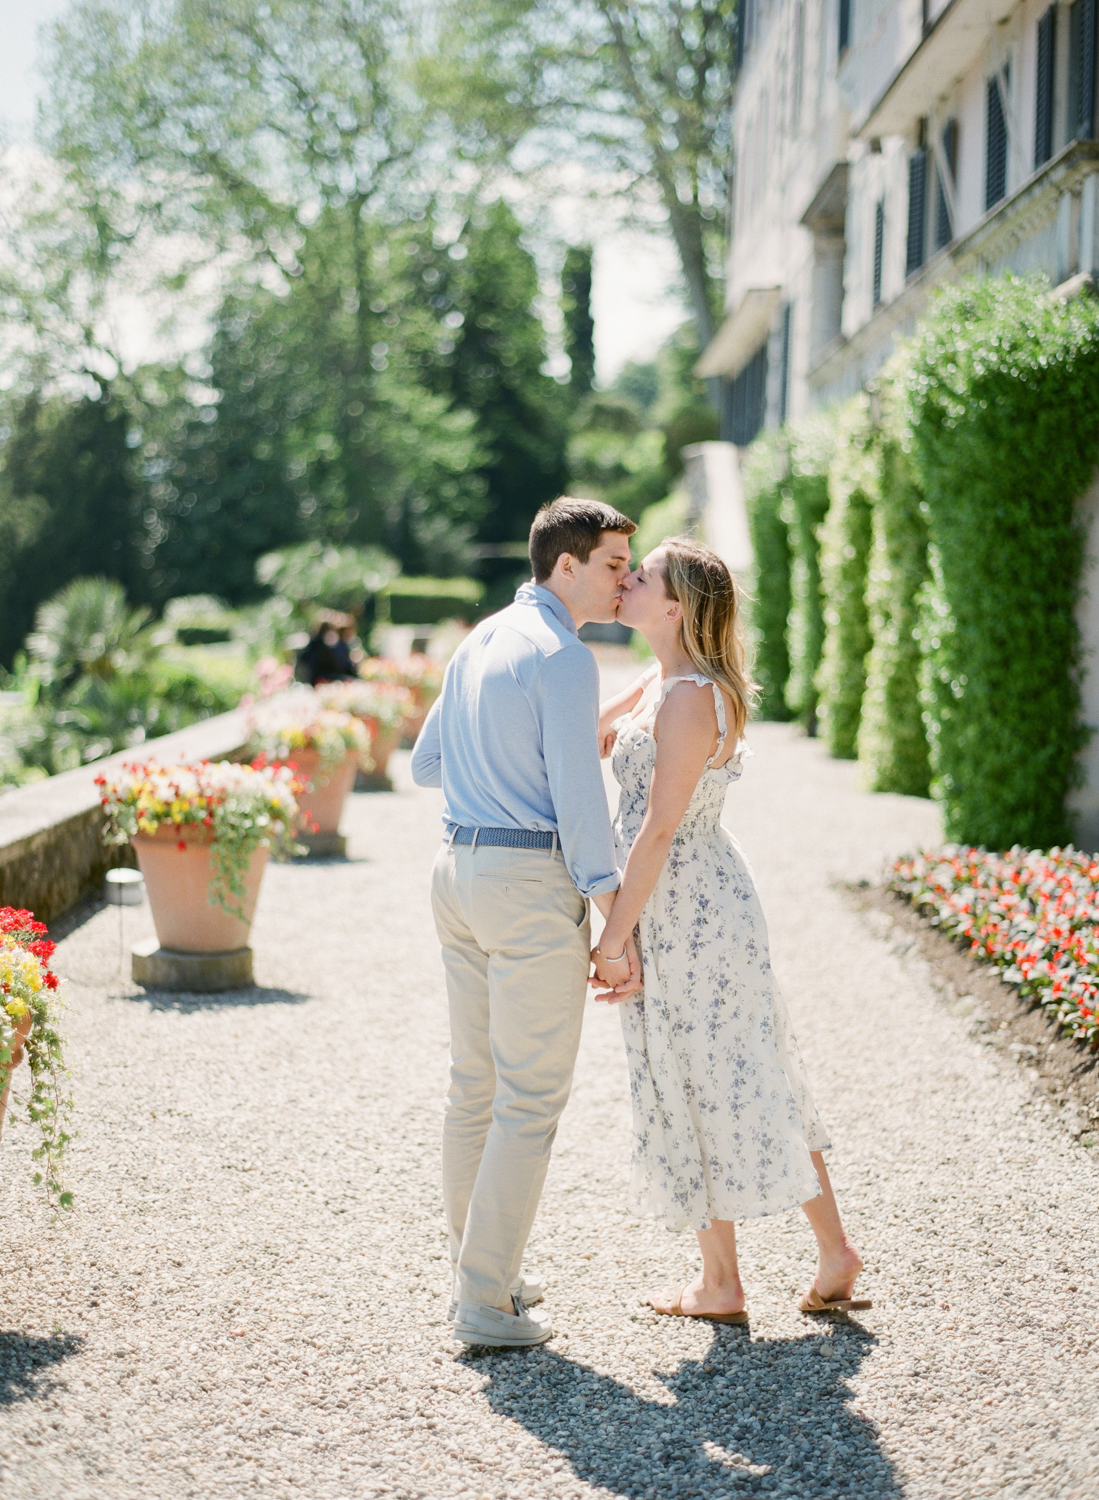 lake como film wedding photographer italy wedding photographer nikol bodnarova photography 41.JPG